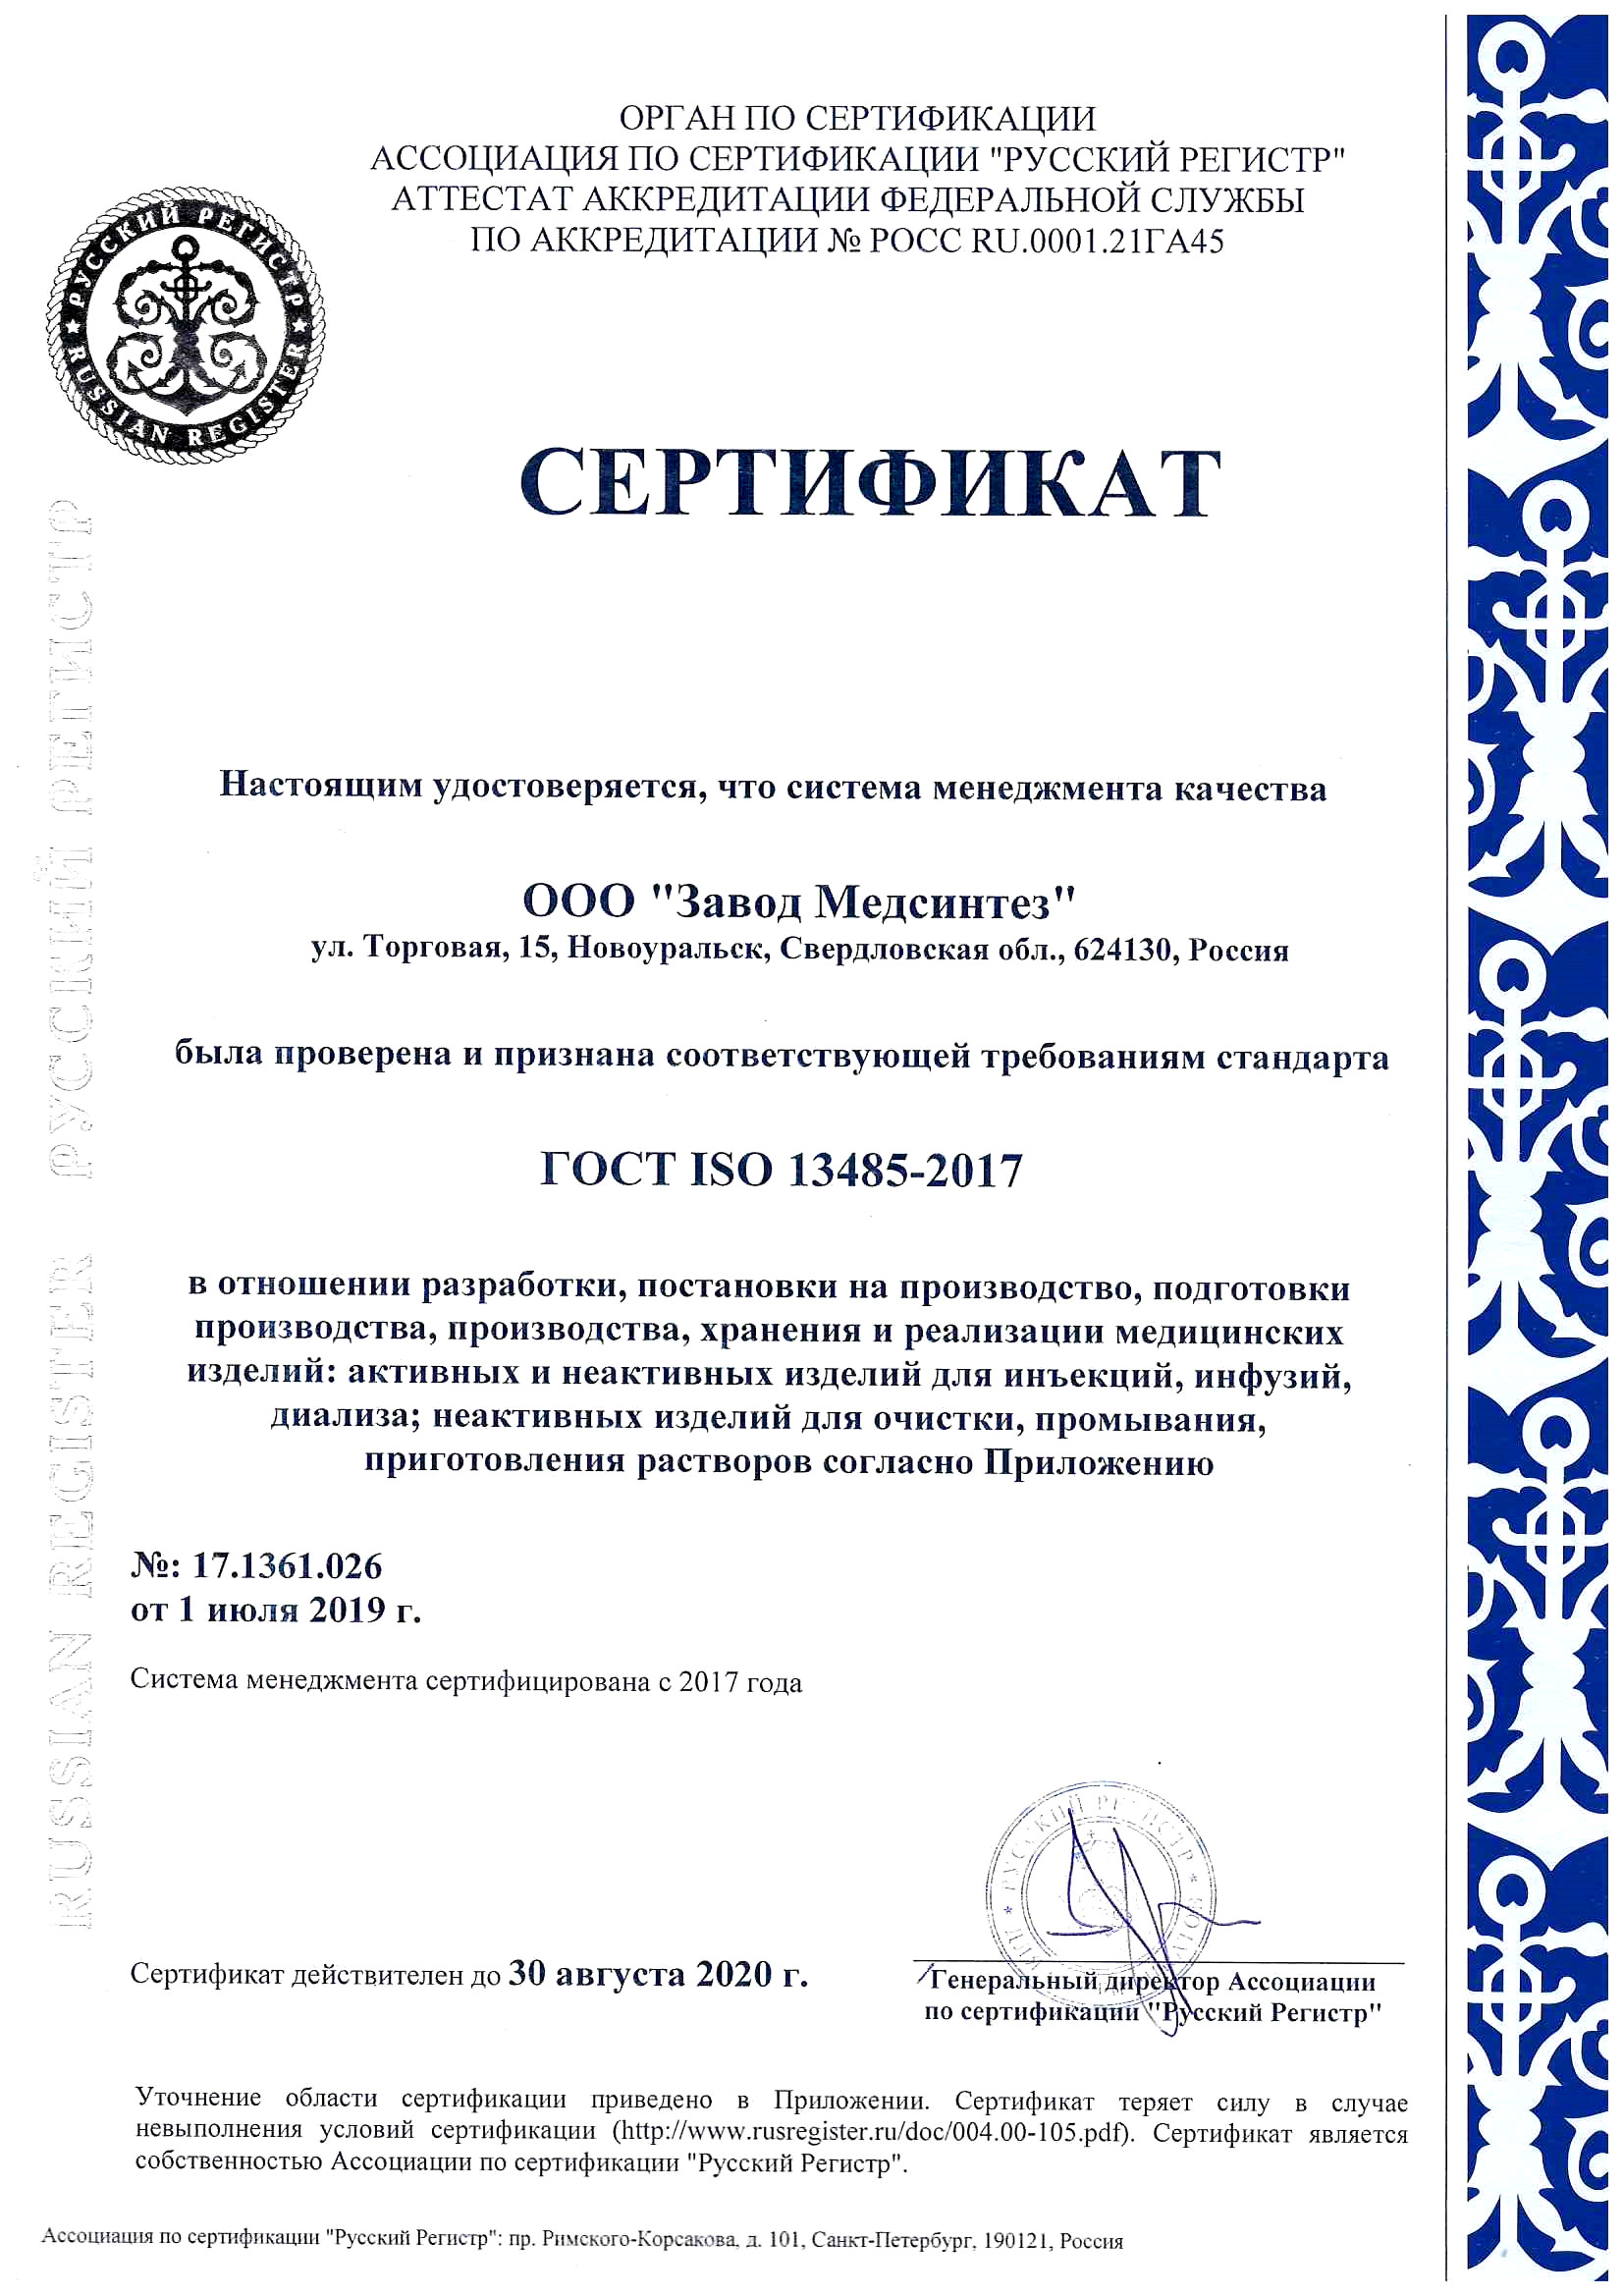 Certificate of compliance with the requirements of ISO 13485:2016 standard issued by Russian Register Certification Association